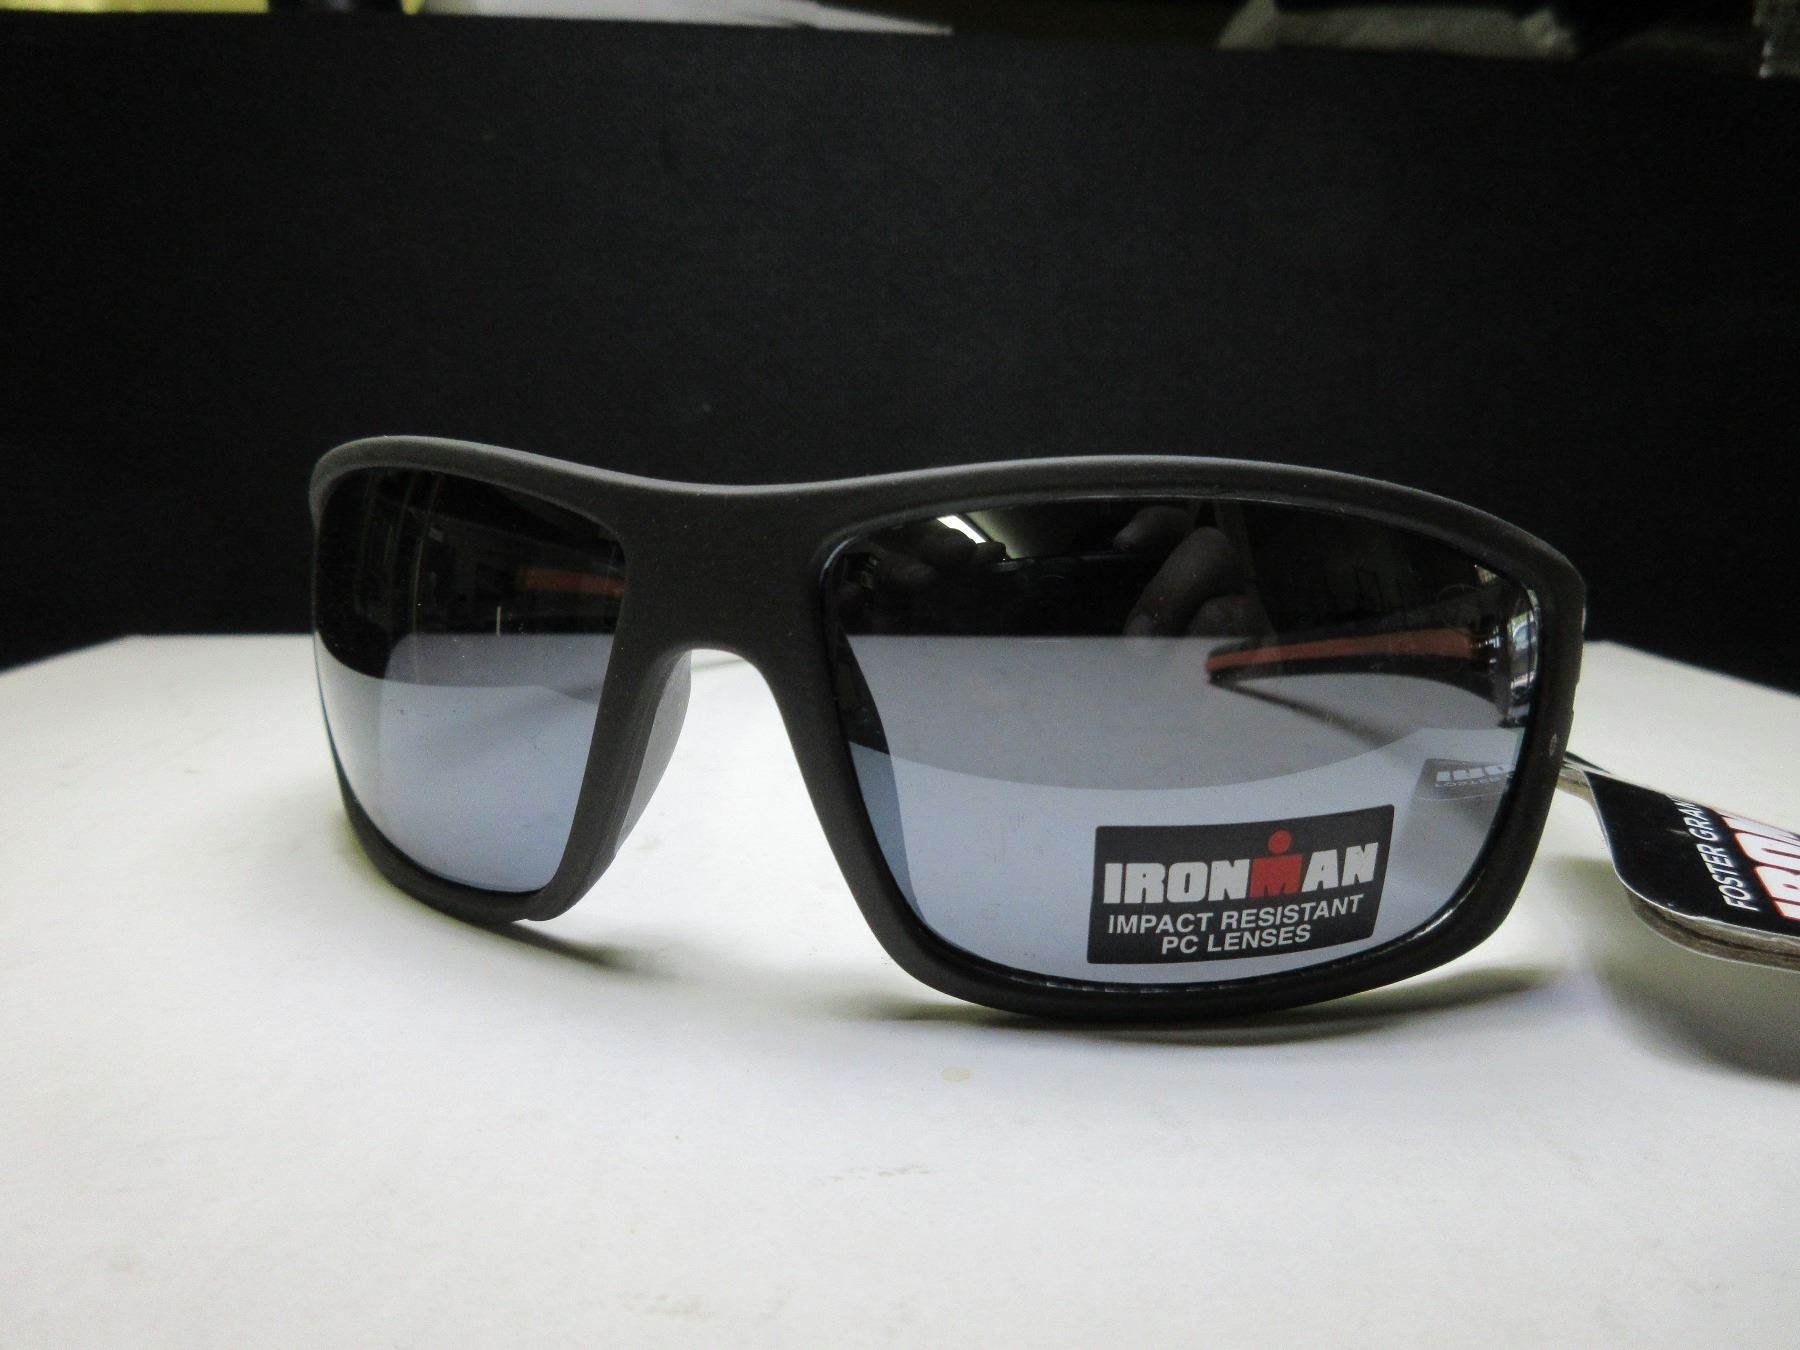 0ee49c2129 Image 1   New Mens Foster Grant Ironman Sunglasses 100% protection impact  res.